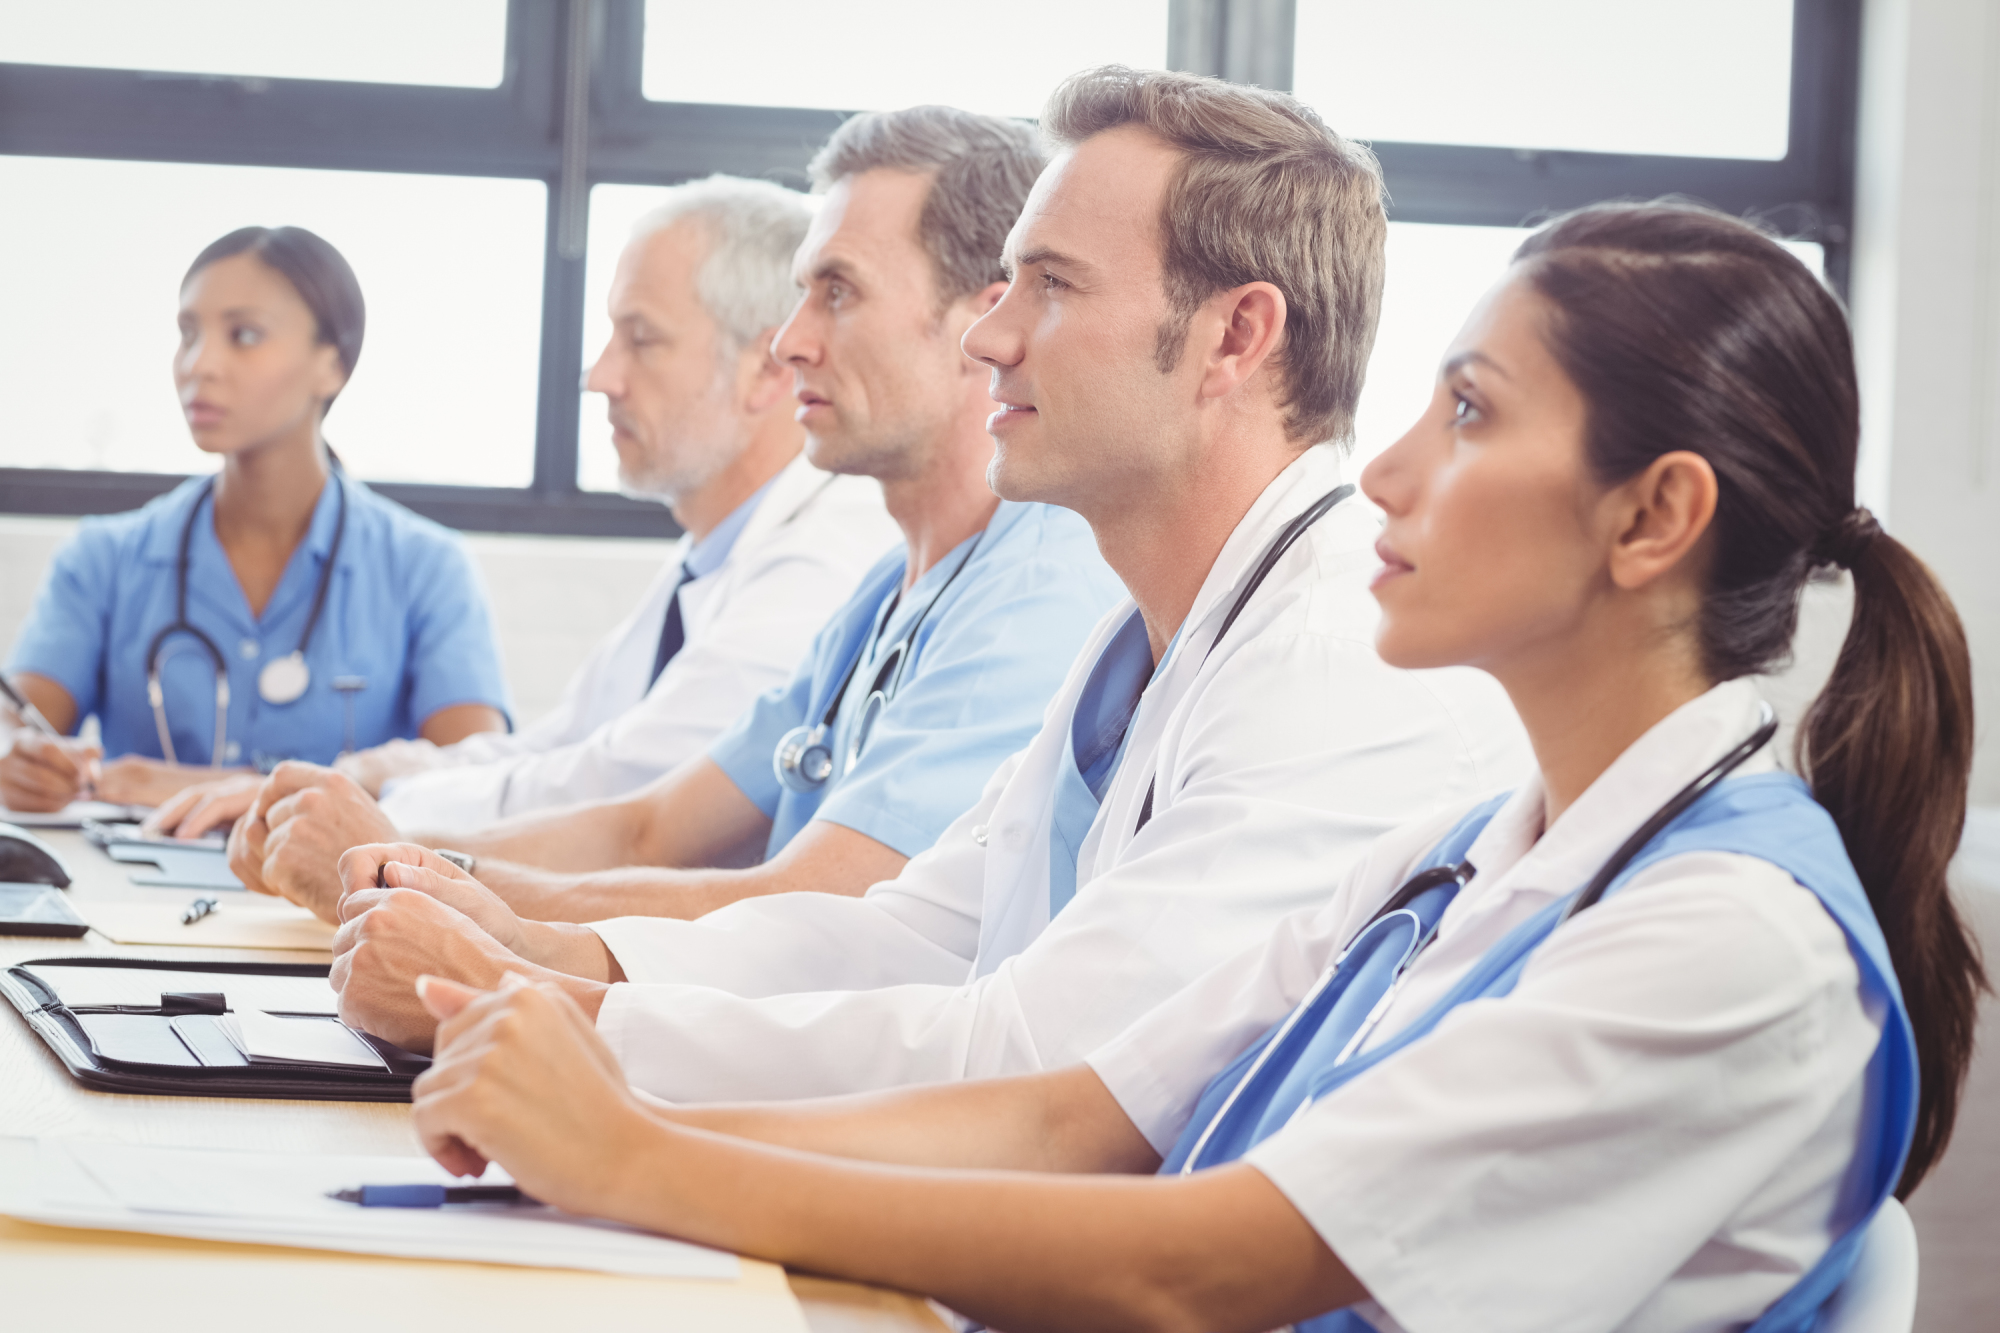 7 Common Questions Regarding Osha And Hipaa Training